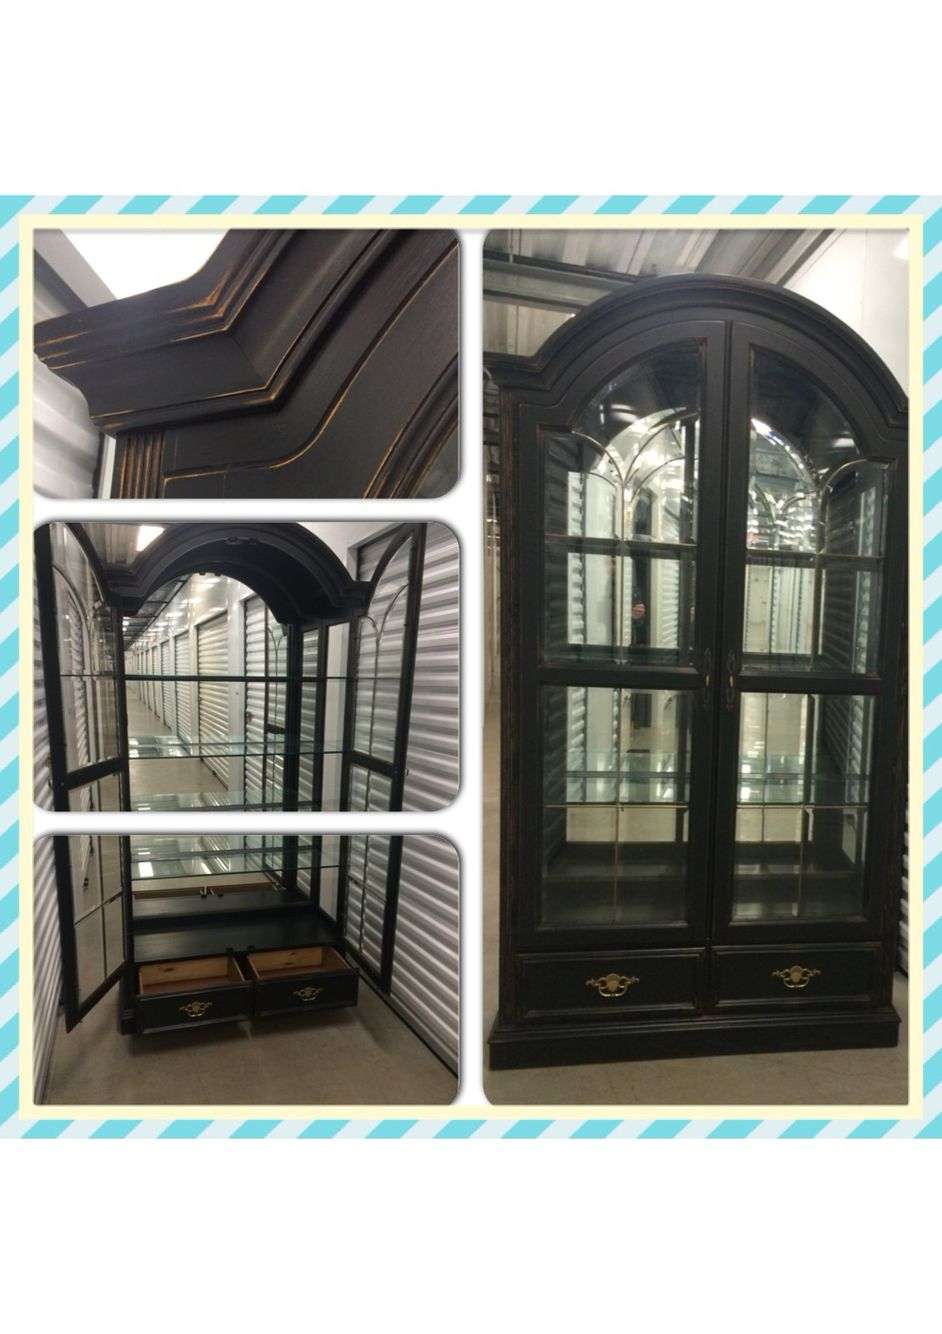 Display Curio Cabinet Refinished In Black Chalk Paint Distressed And Sealed Curio Cabinet Redo Redo Furniture Furniture Restoration